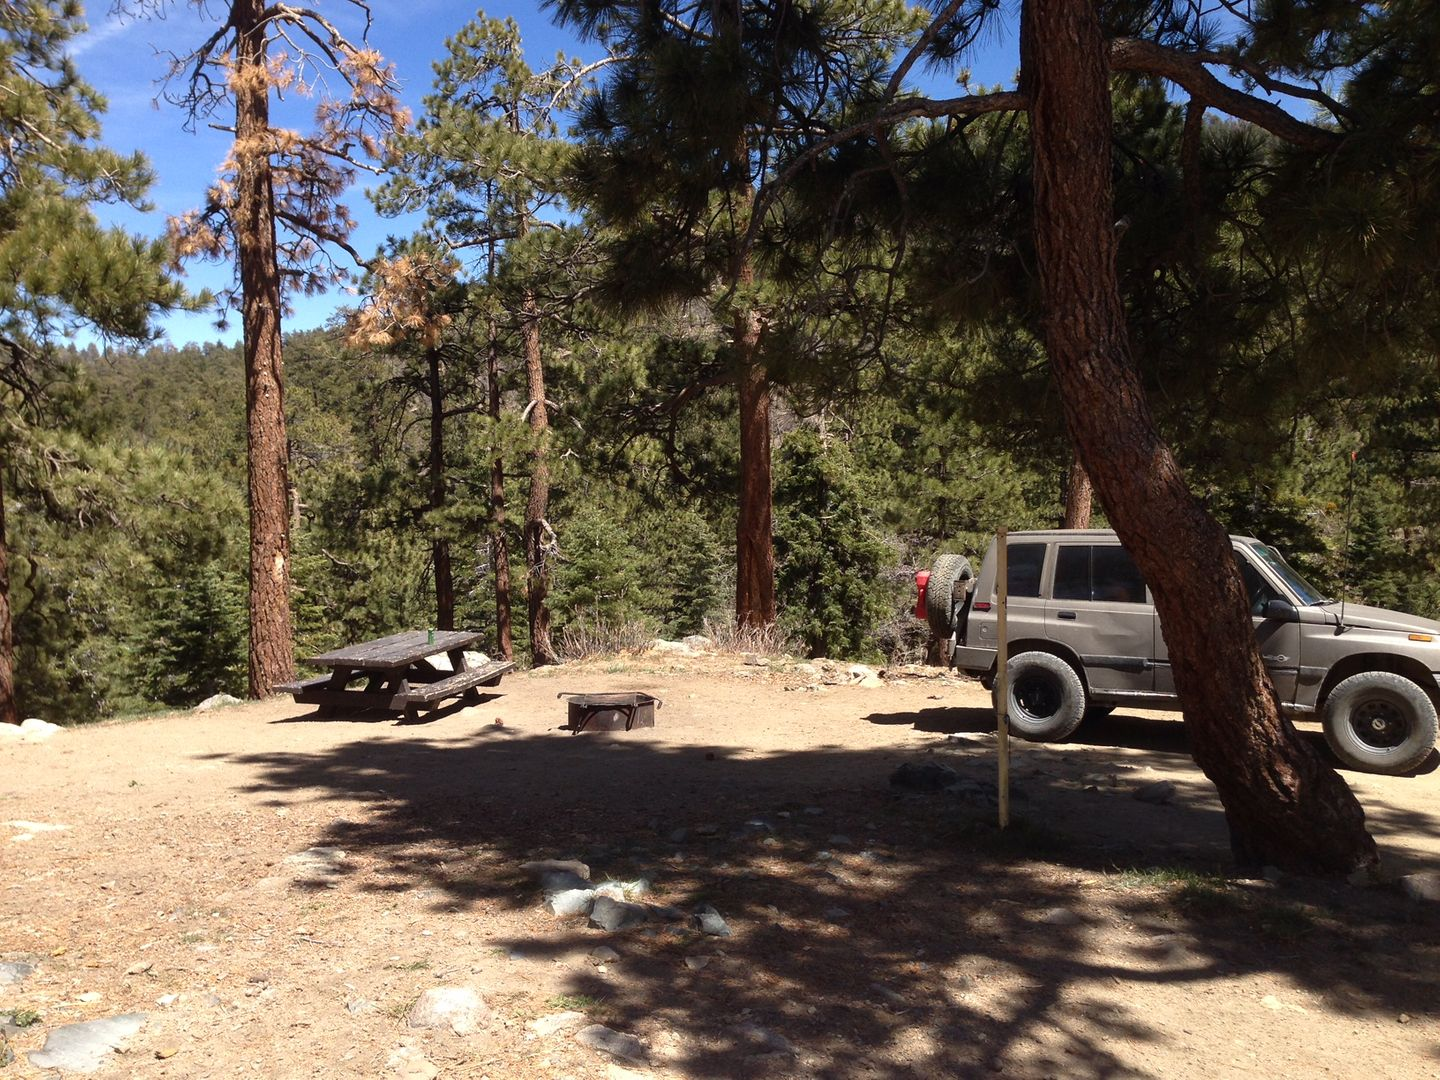 Camping: 3N34 - Willow Creek Jeep Trail